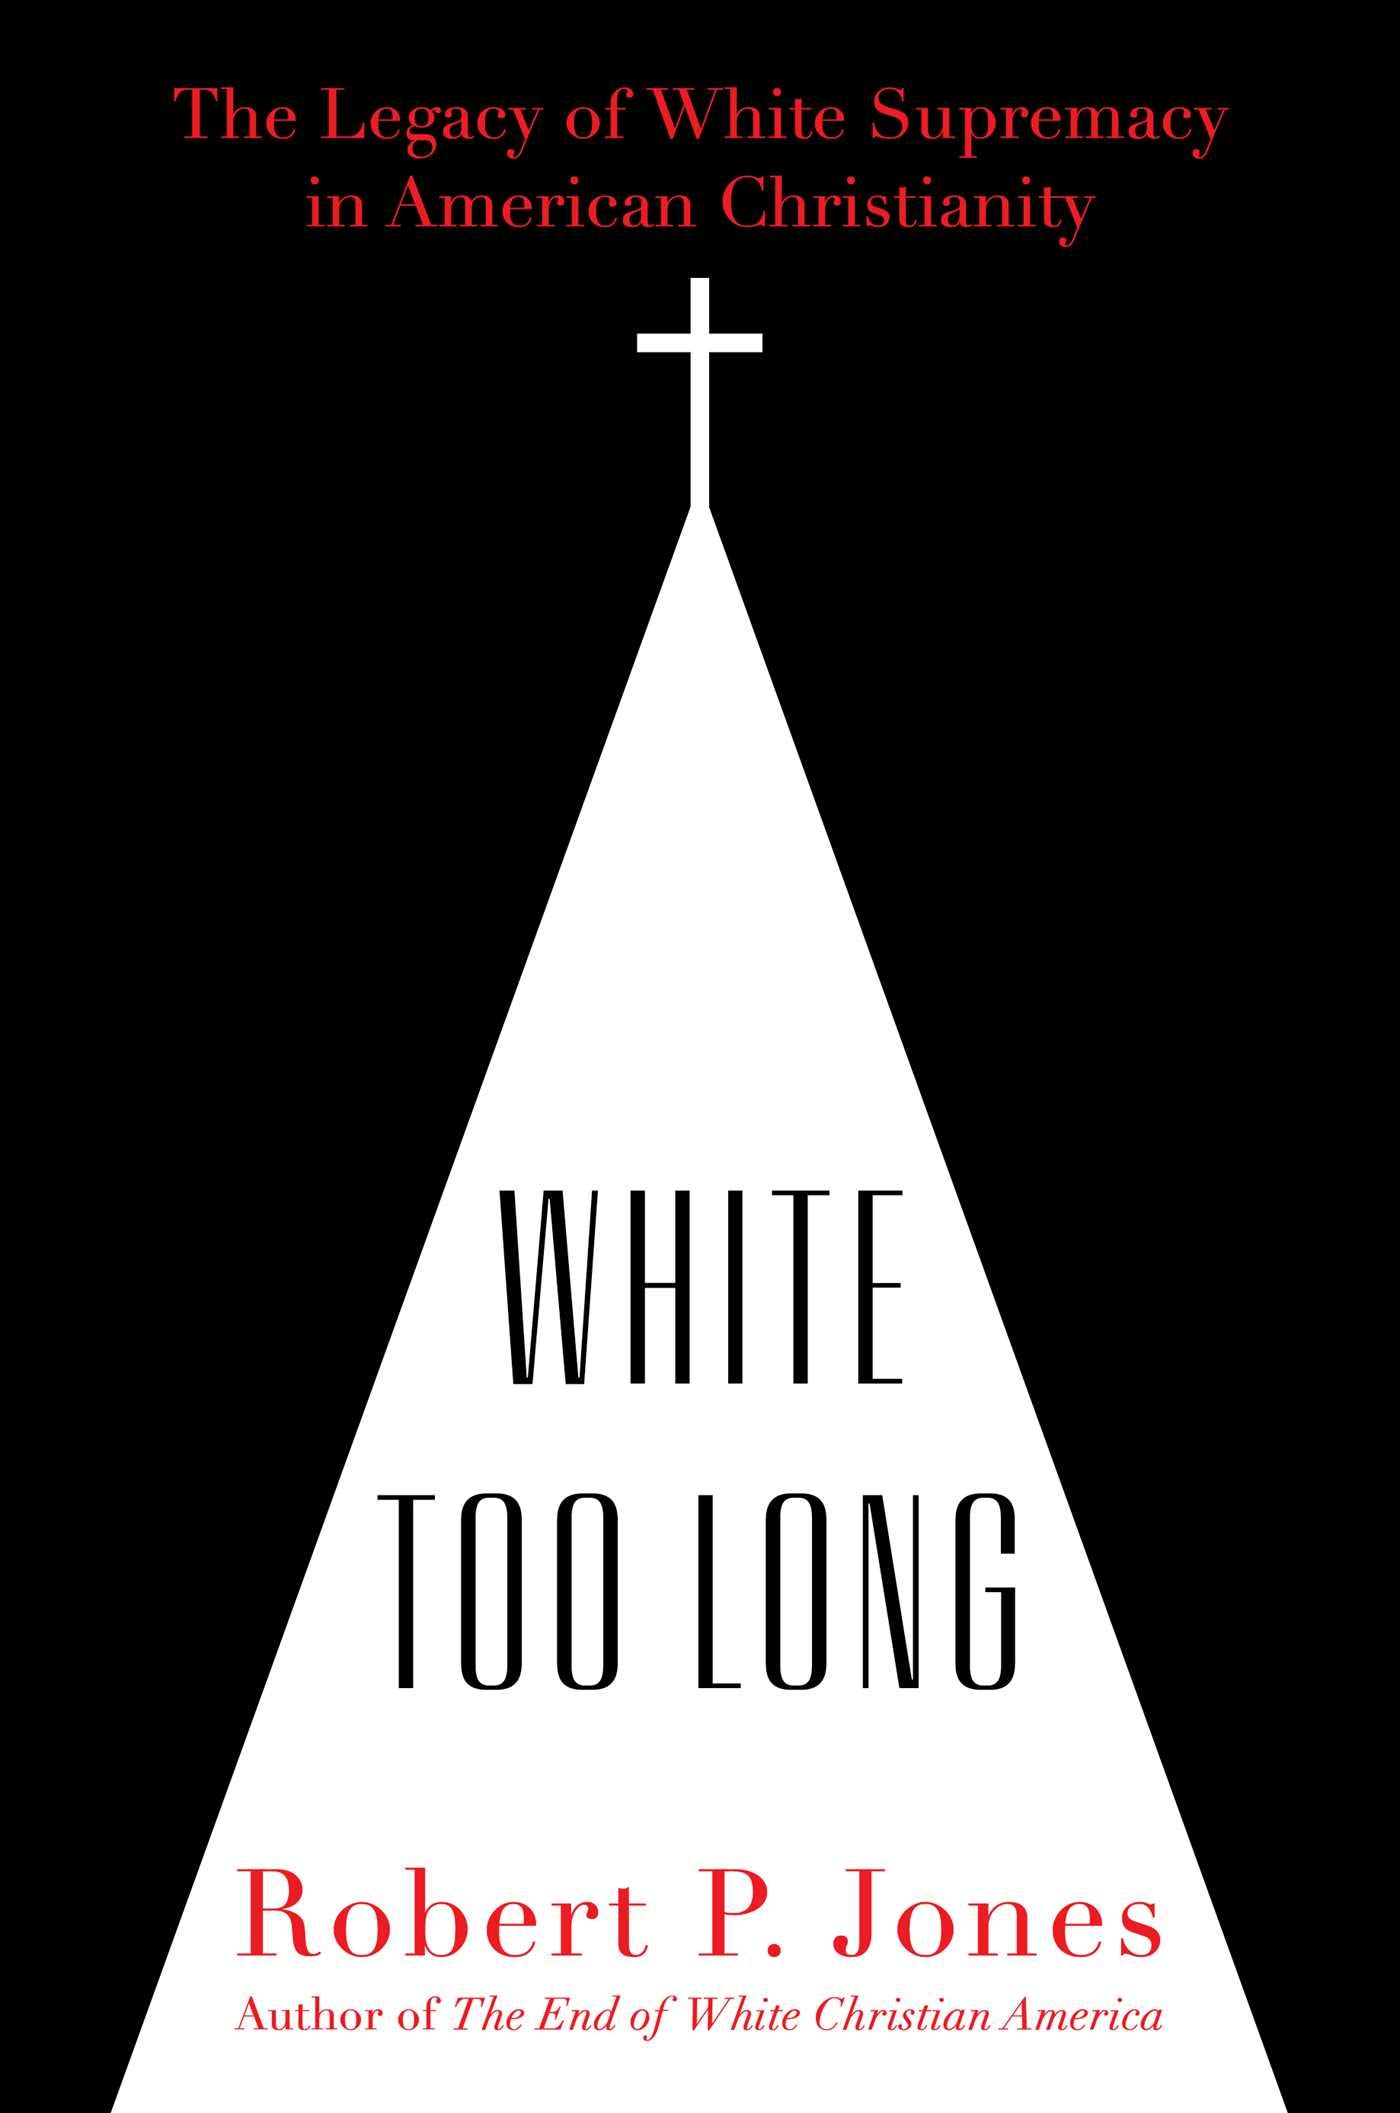 White Too Long: The Legacy of White Supremacy in American Christianity: Jones, Robert P.: 9781982122867: Amazon.com: Books